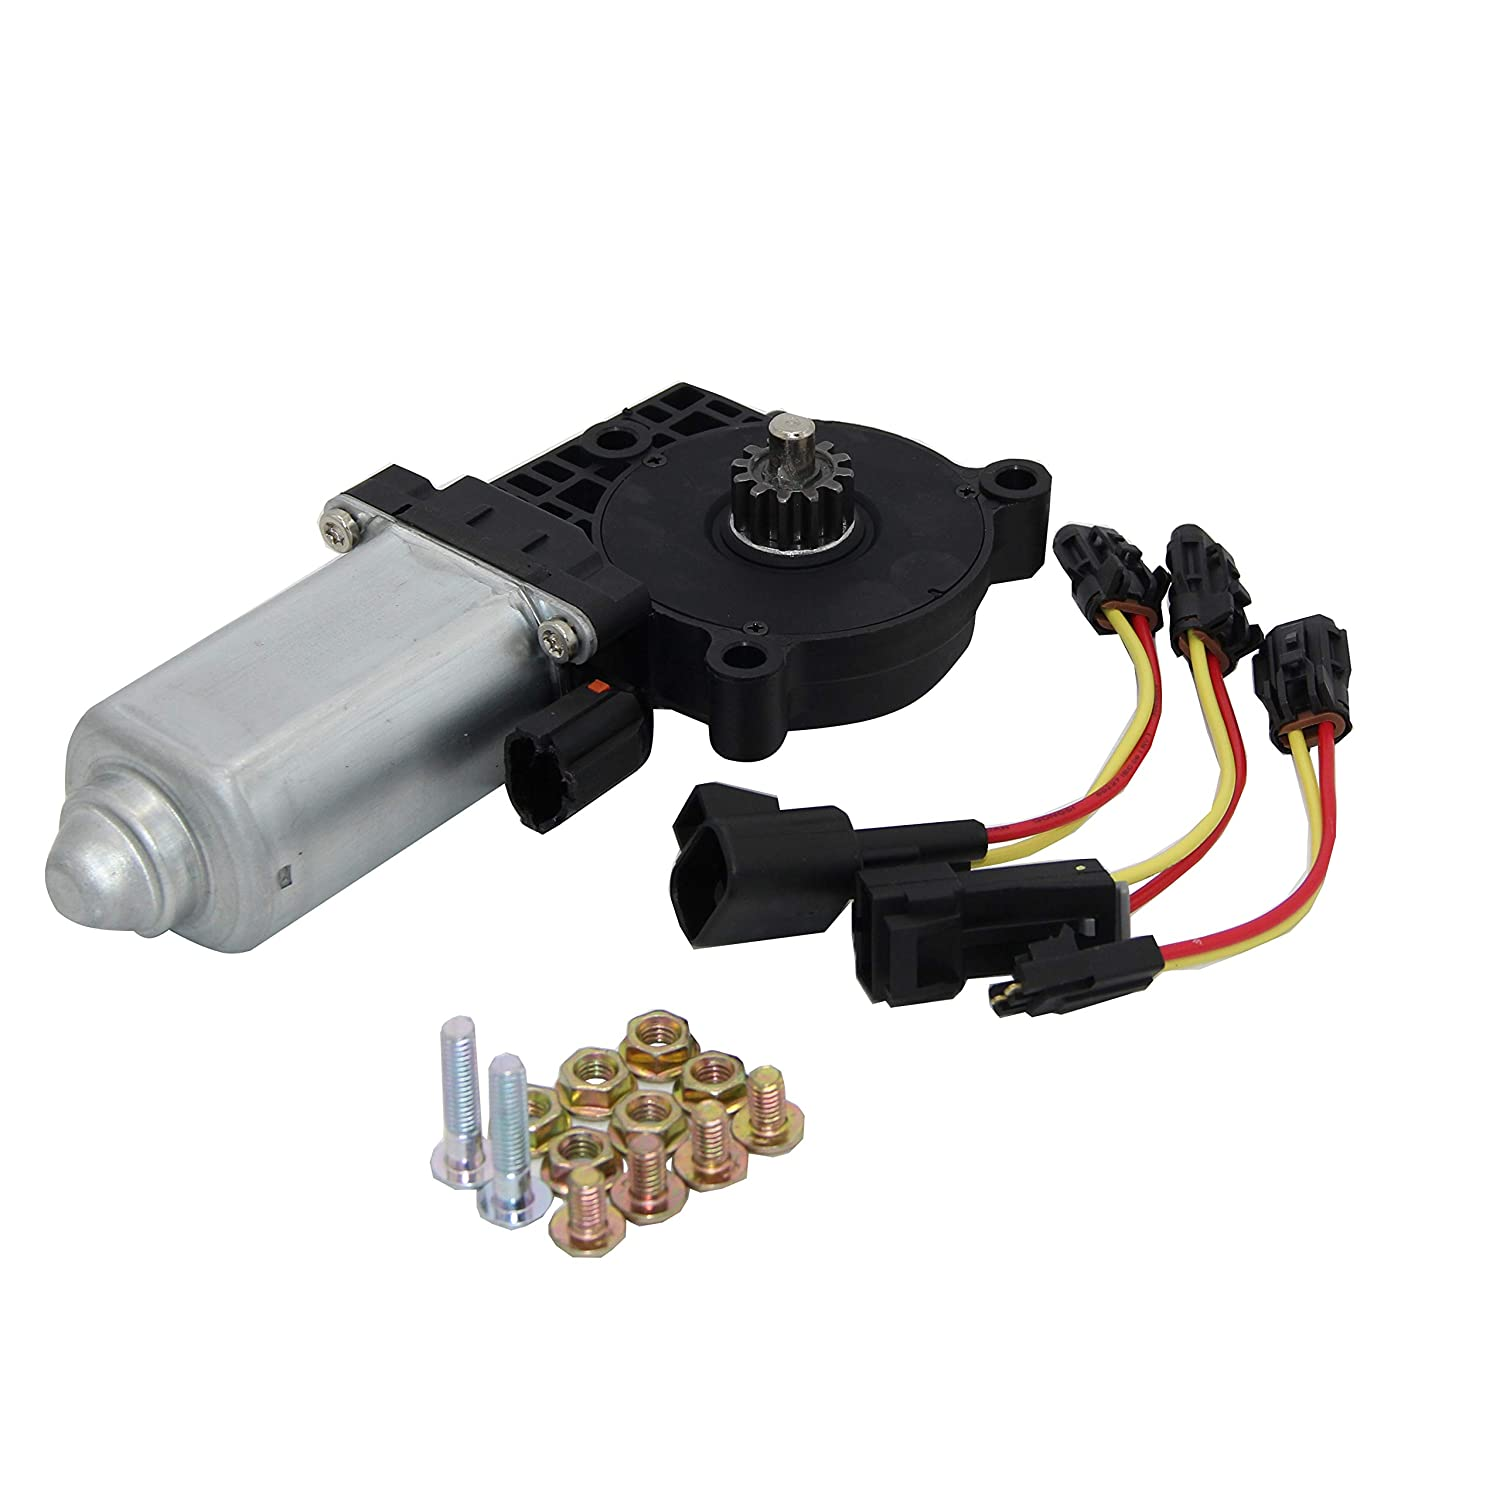 Docas Power Window Motor Lift Motor for PONTIAC BUICK CHEVROLET 1987-2002 GM 22062567